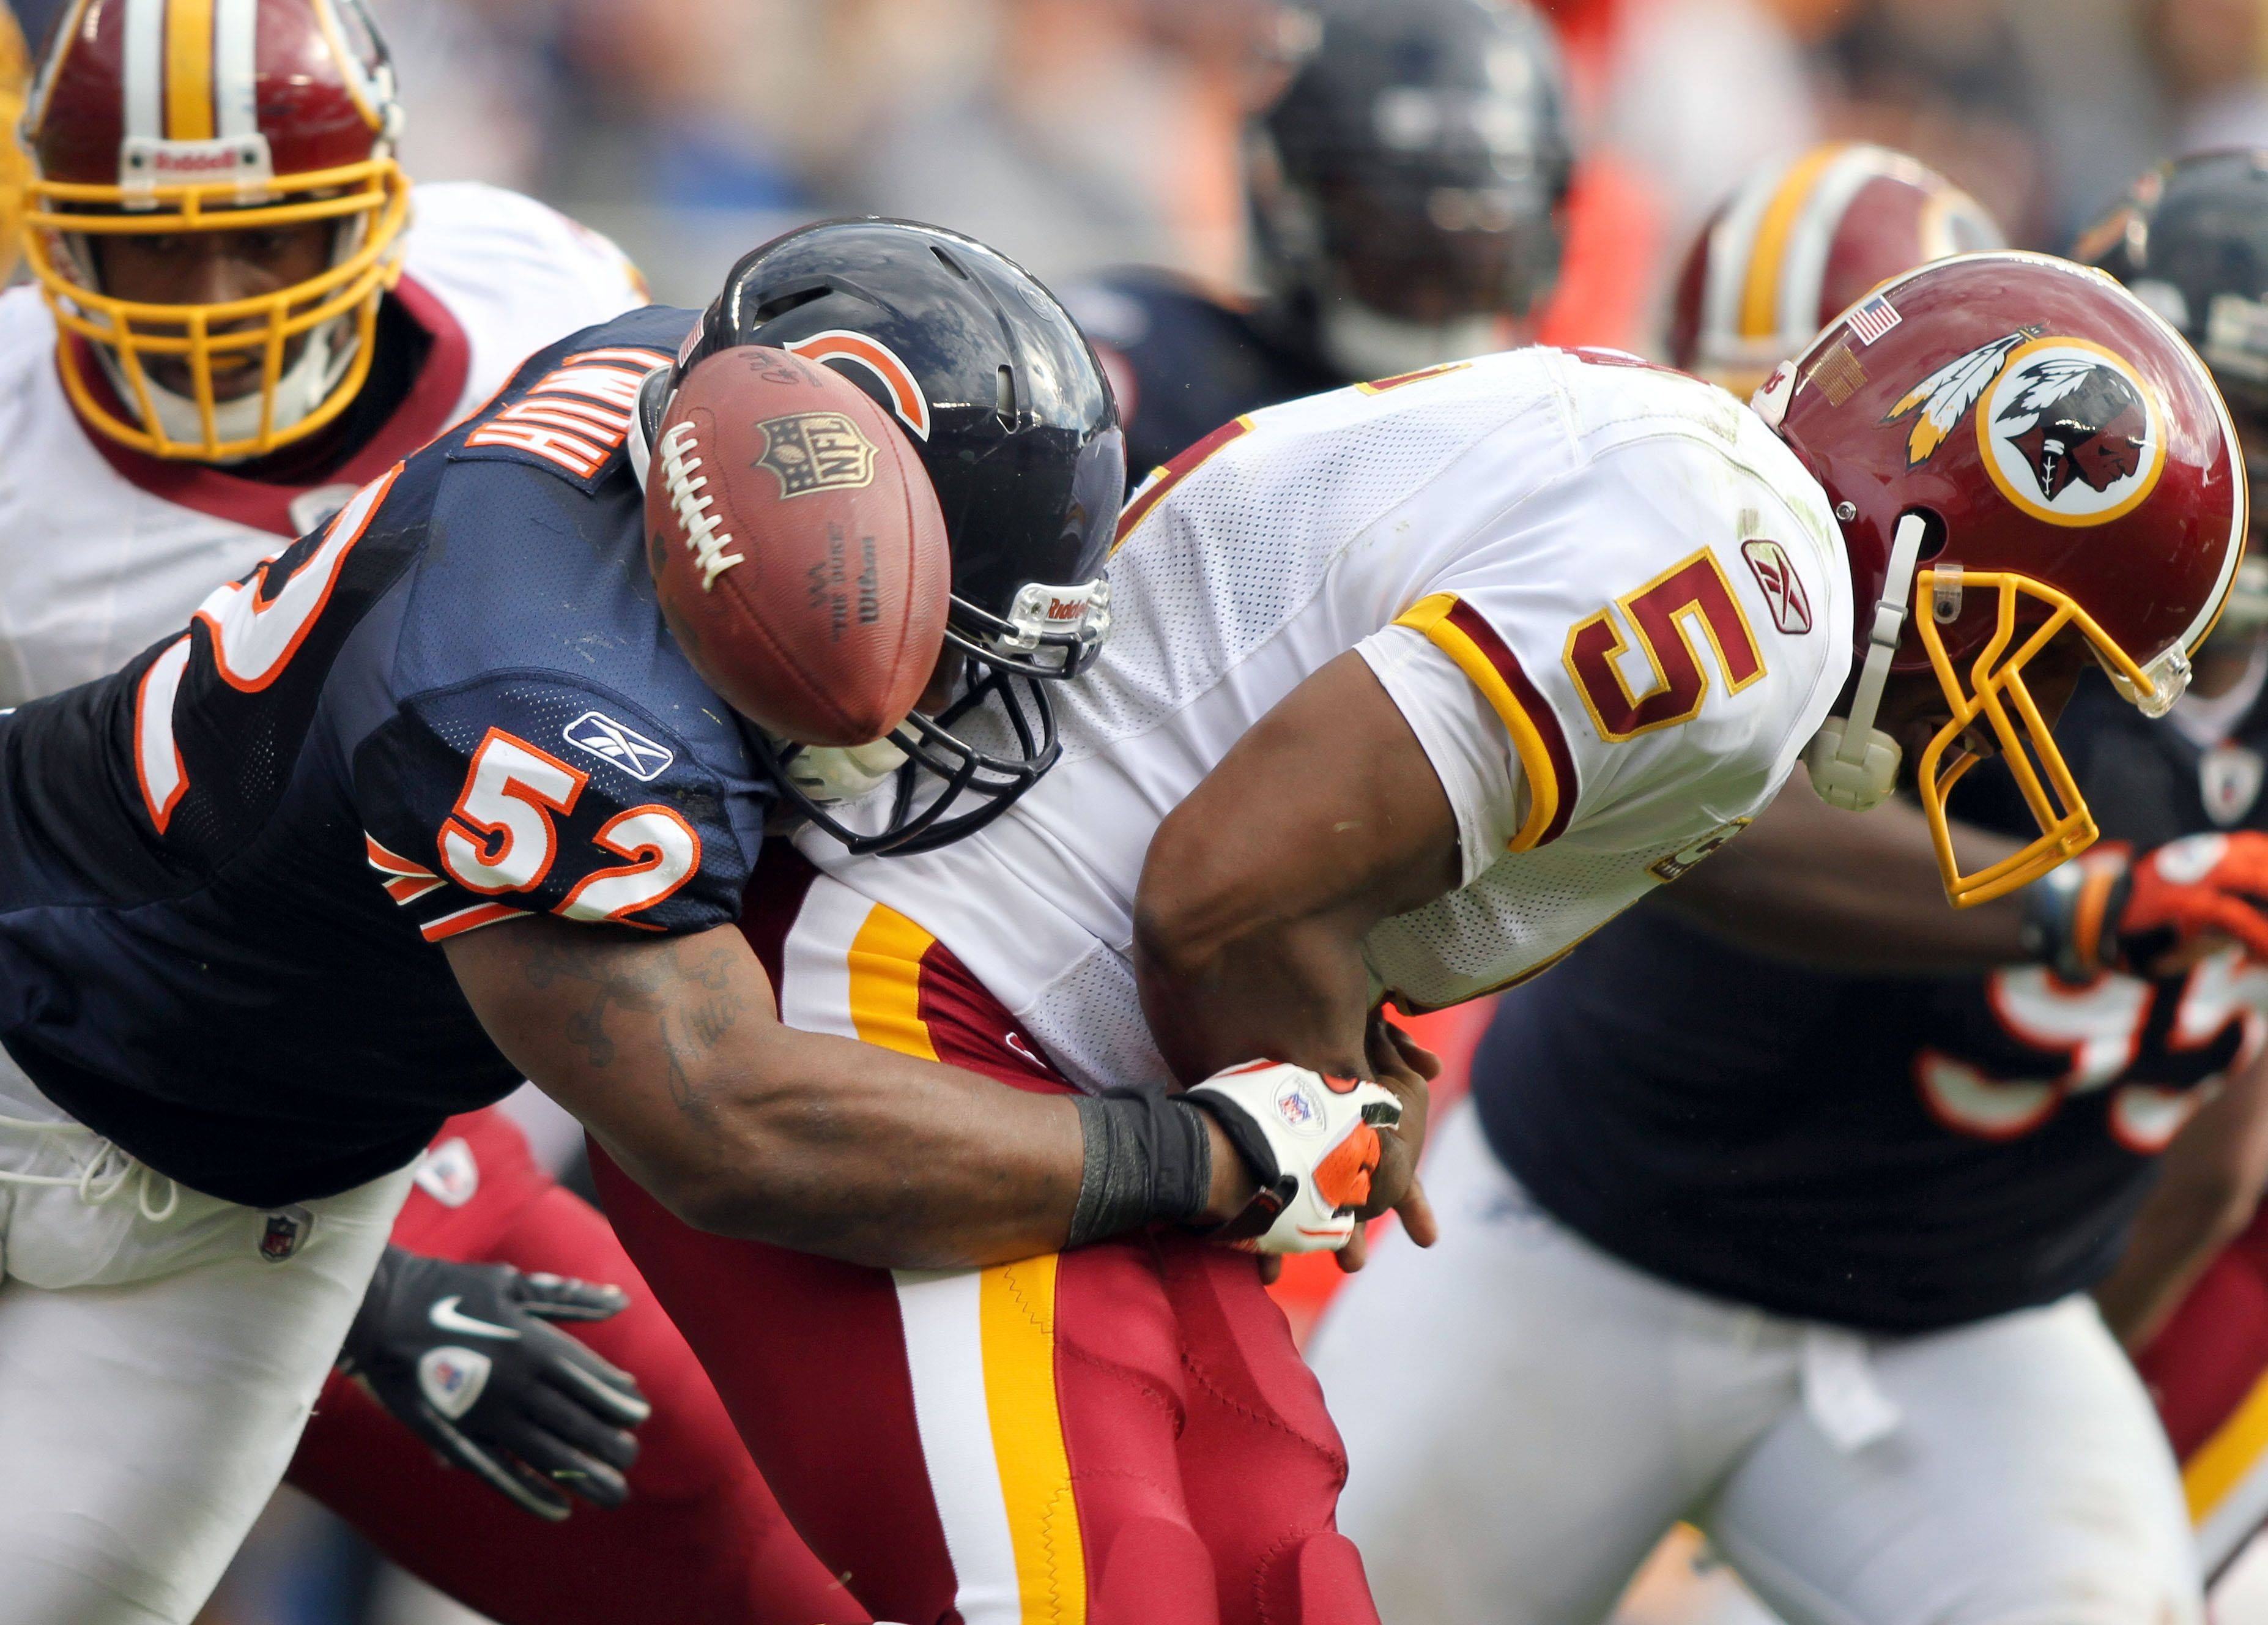 Chicago Bears linebacker Brian Iwuh sacks Washington Redskins quarterback Donovan McNabb during the Bears' 14-17 loss to the Redskins Sunday at Soldier Field in Chicago.